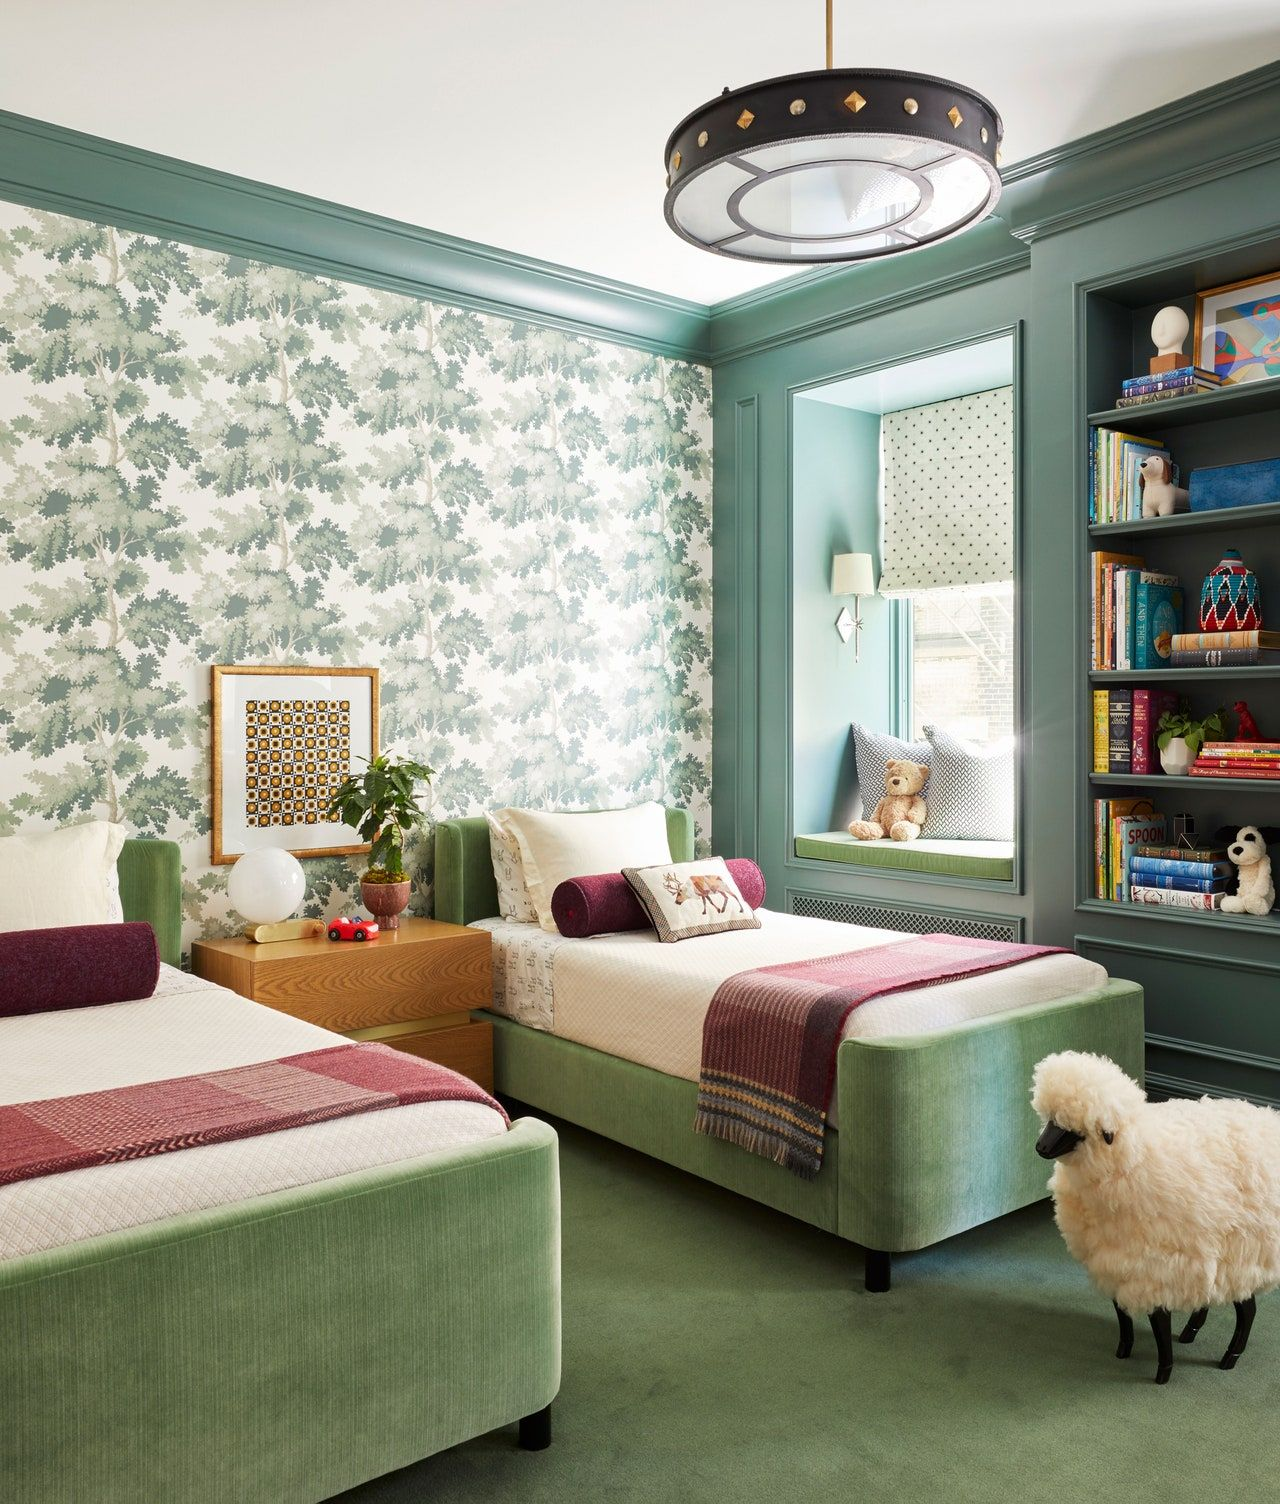 A Chicago Pied-à-Terre Filled With One-of-a-Kind Details